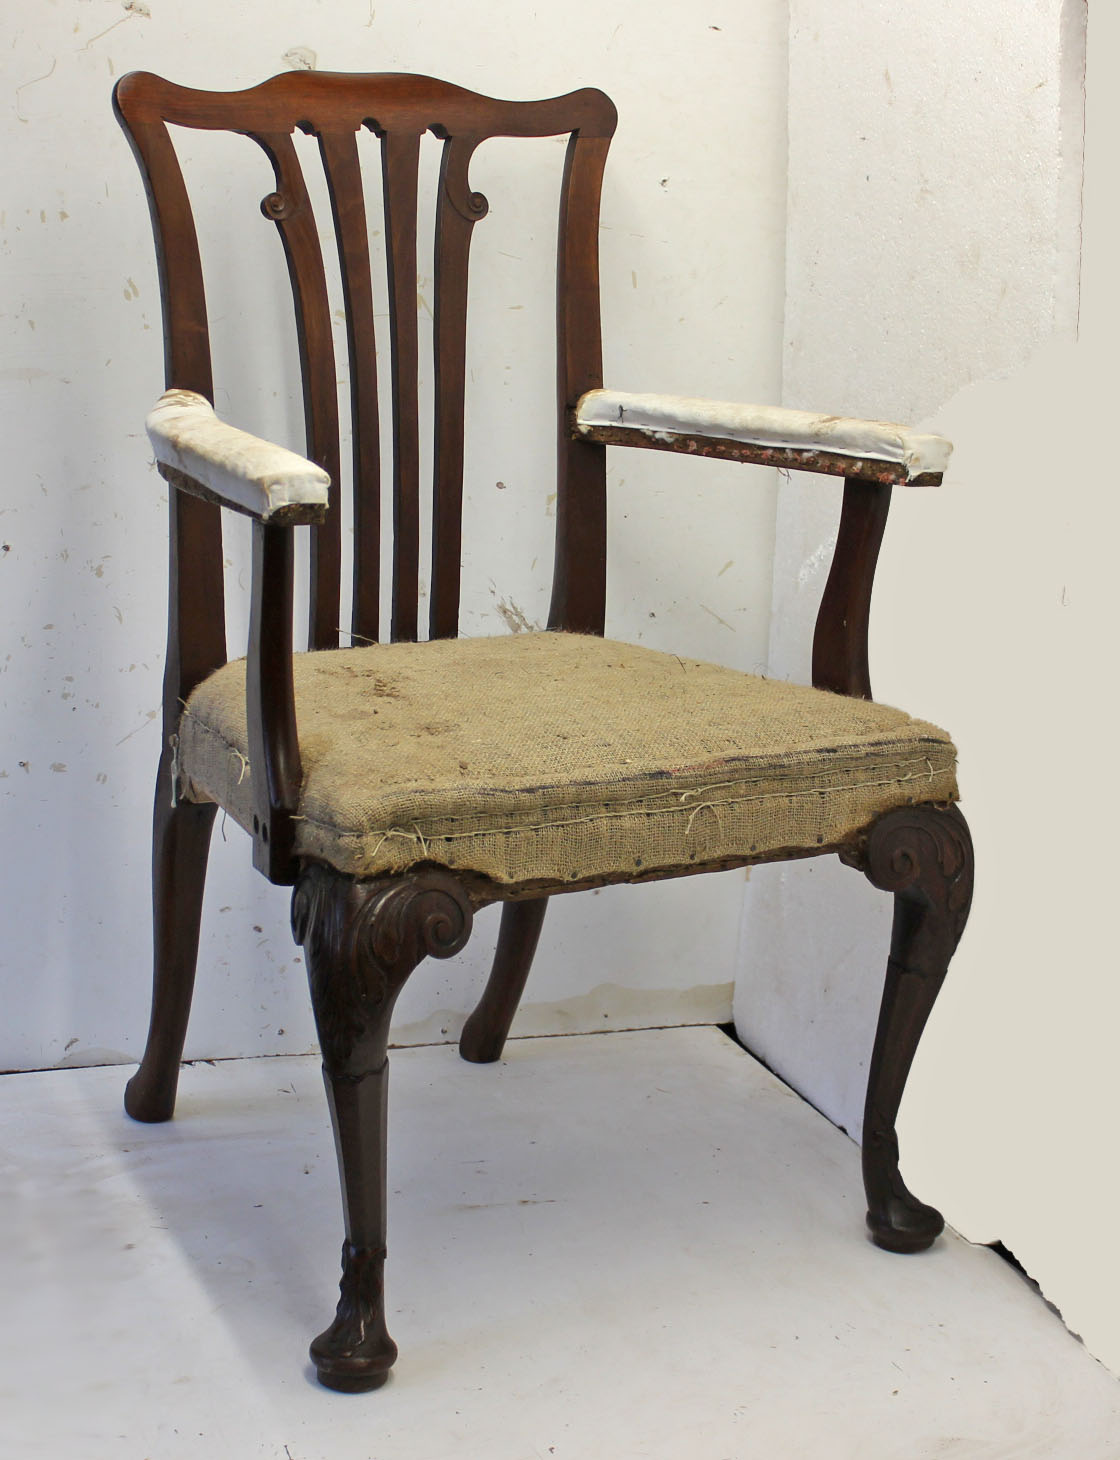 Antique chair restoration. An Irish George II walnut and mahogany carver - OldChairs.ie - We Run Weekend Restoration Courses. We Also Sell